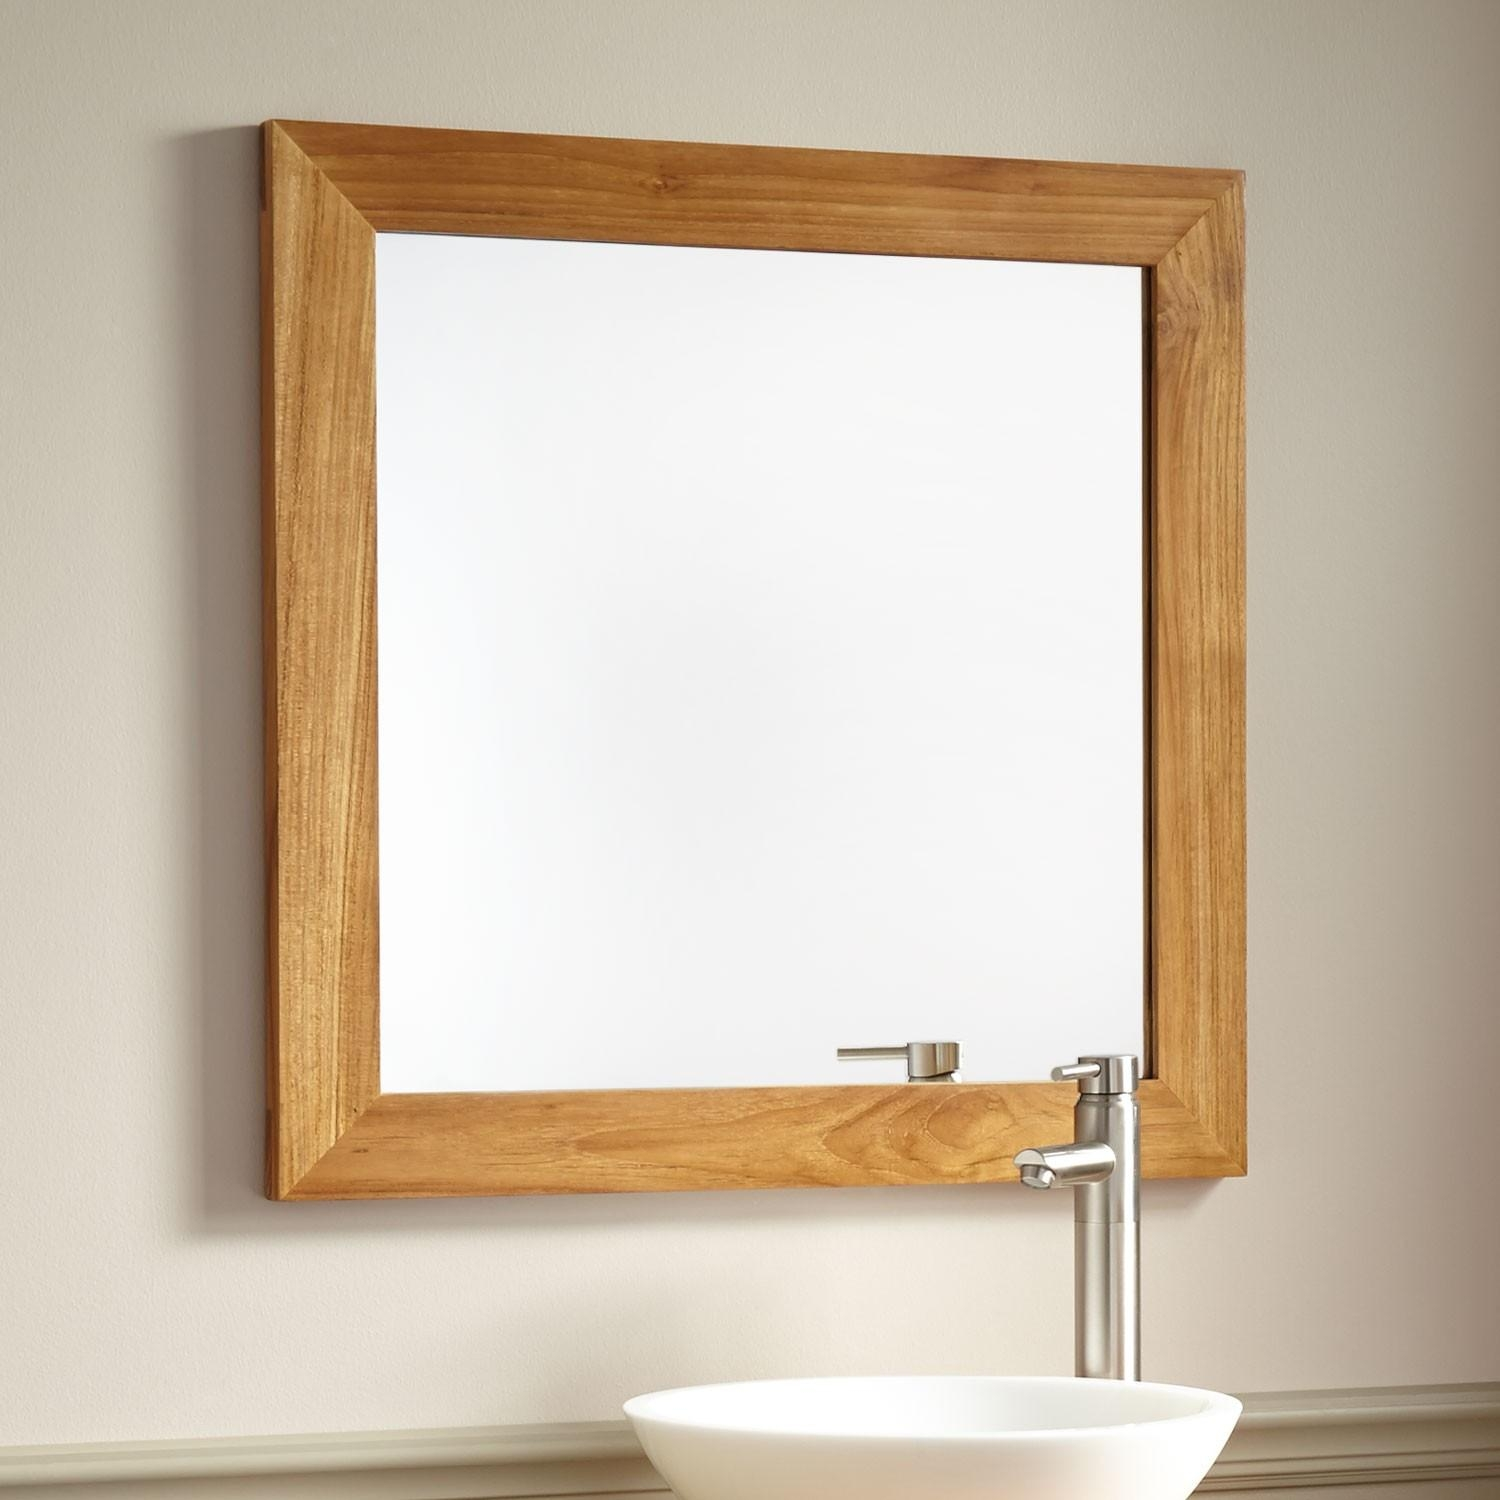 Large Mirrors Houston 20 Inspirations Natural Wood Framed Mirrors Mirror Ideas